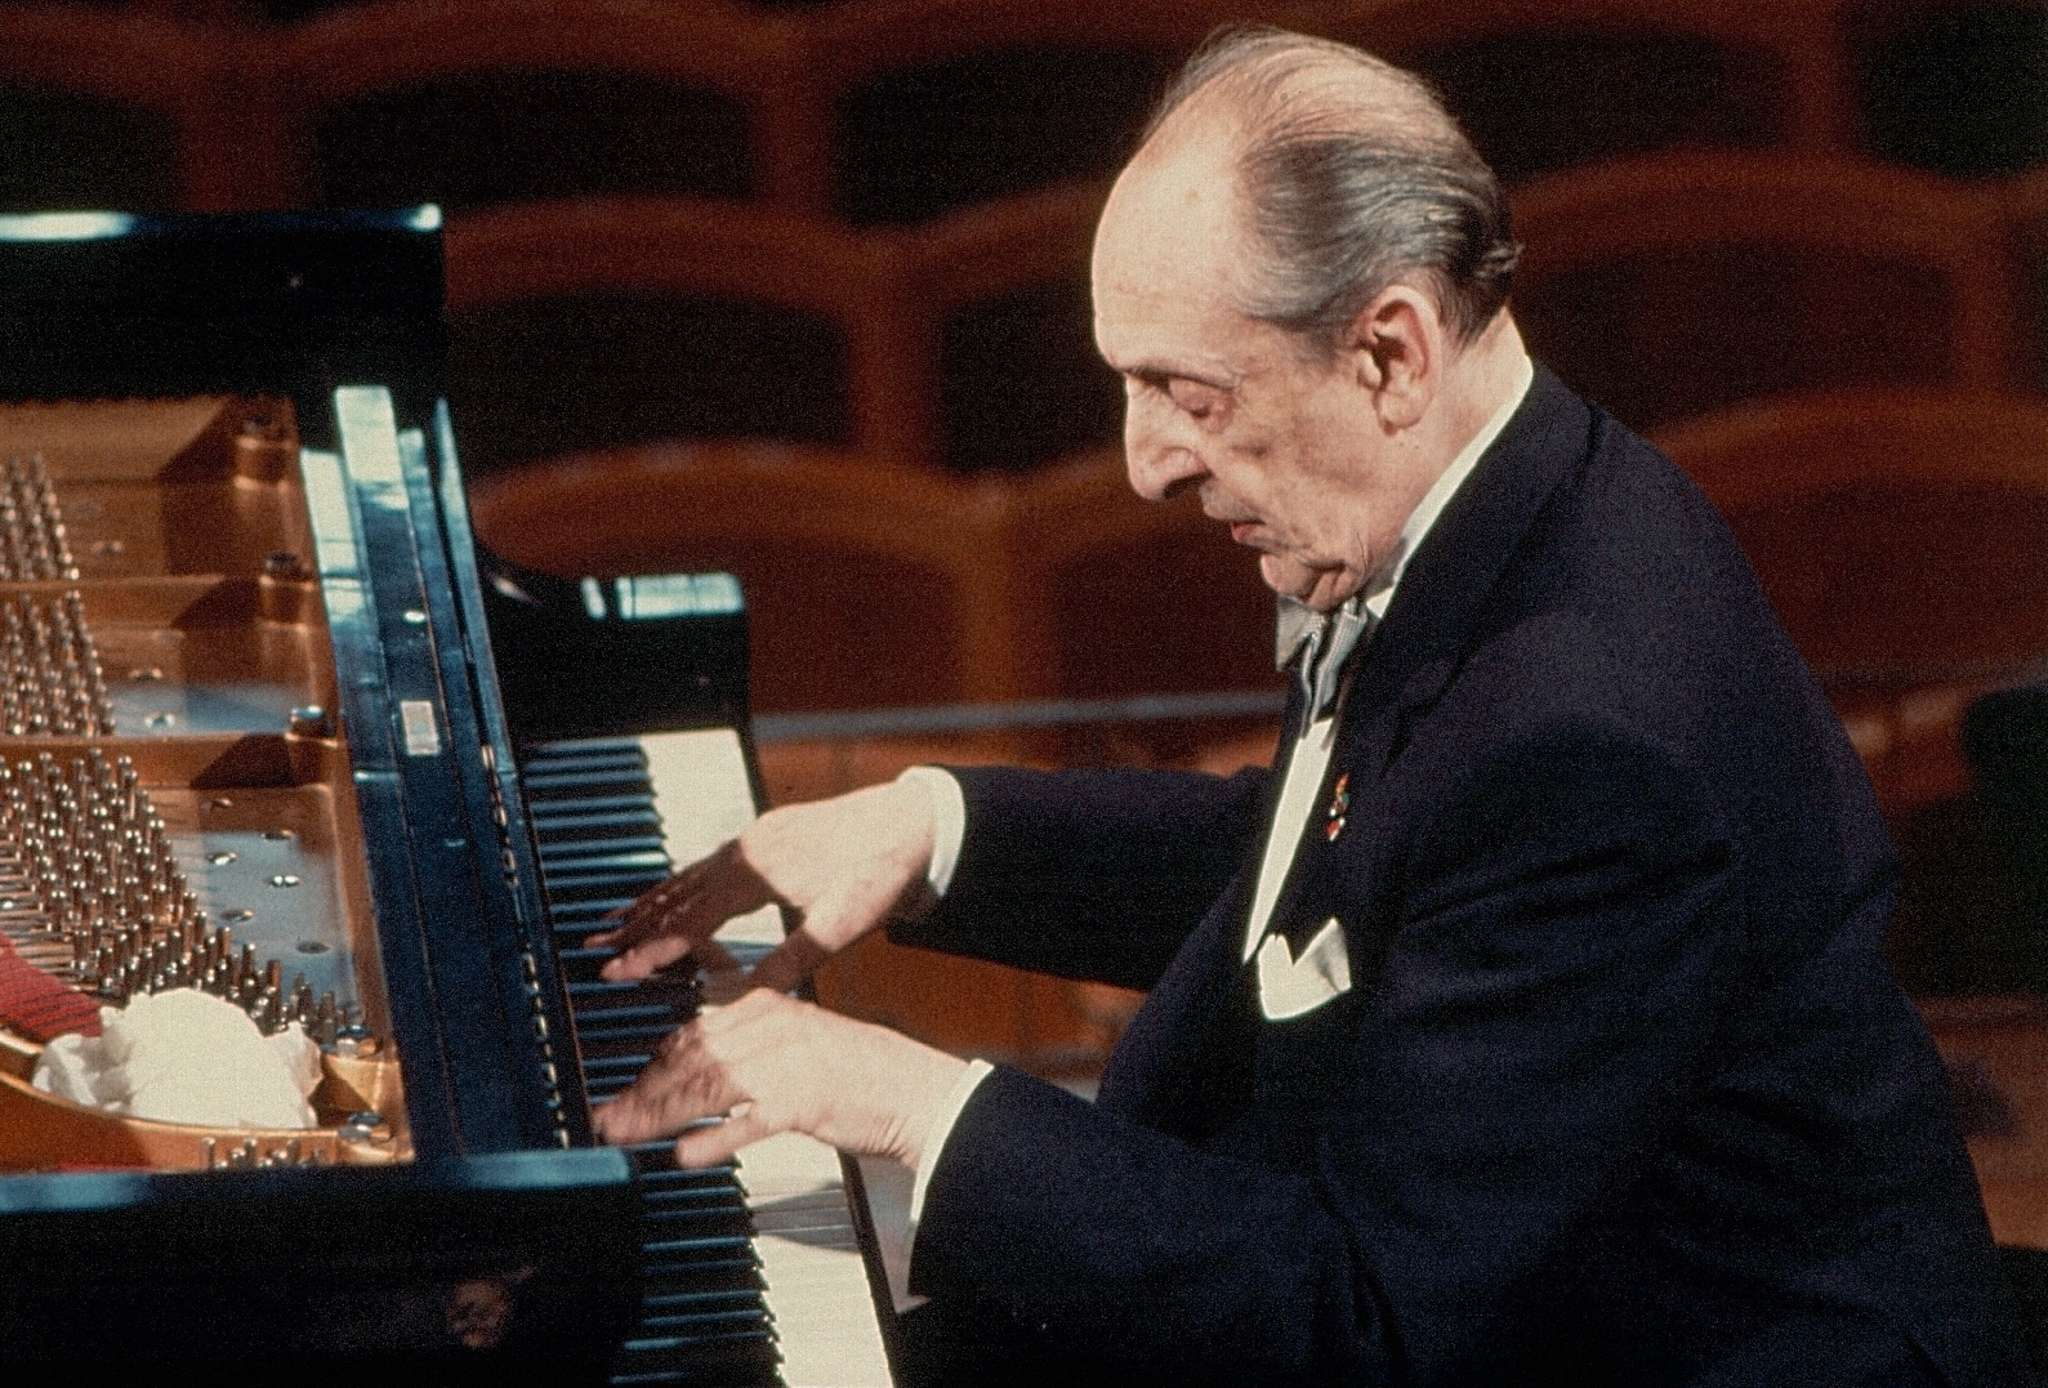 Pianist Vladimir Horowitz, whose 66-year career is conveyed in two boxed sets - one with 50 CDs, one just two. Almost anything ever said about his playing - great, awful, contradictory - finds verification somewhere in these sets.